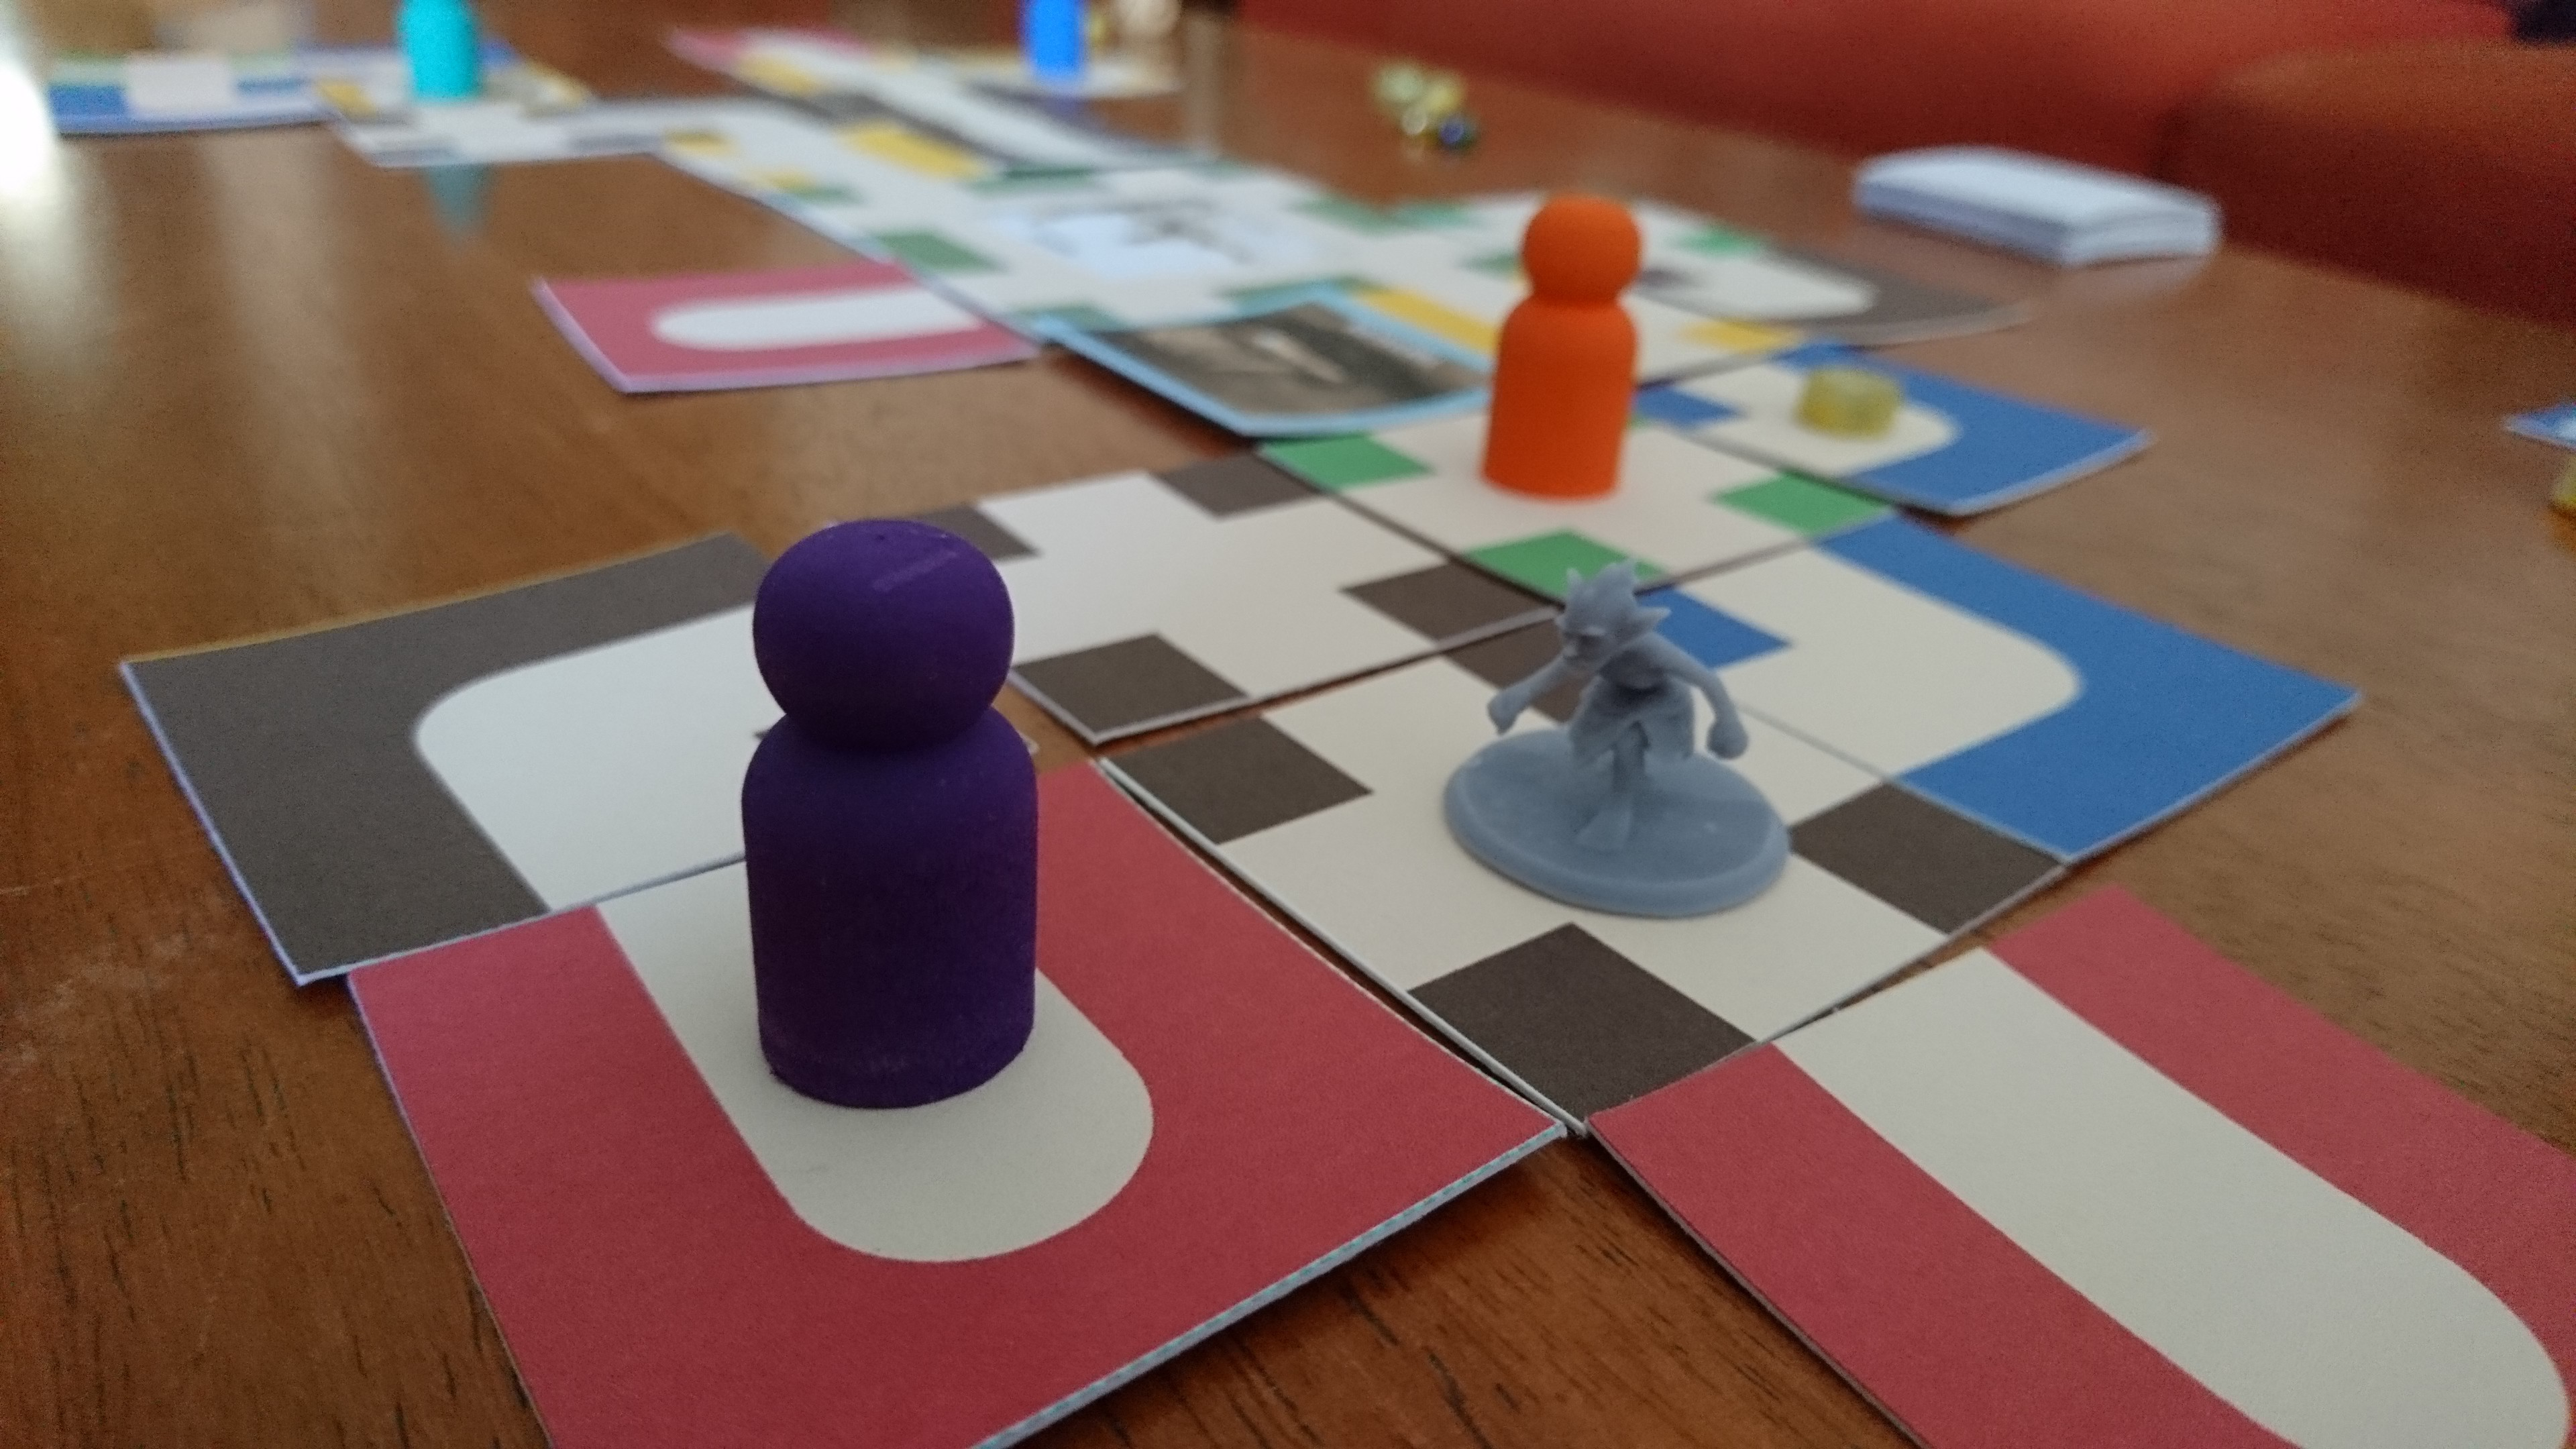 The feelings game: A purple pawn and a grey gremlin on brightly coloured maze tiles.